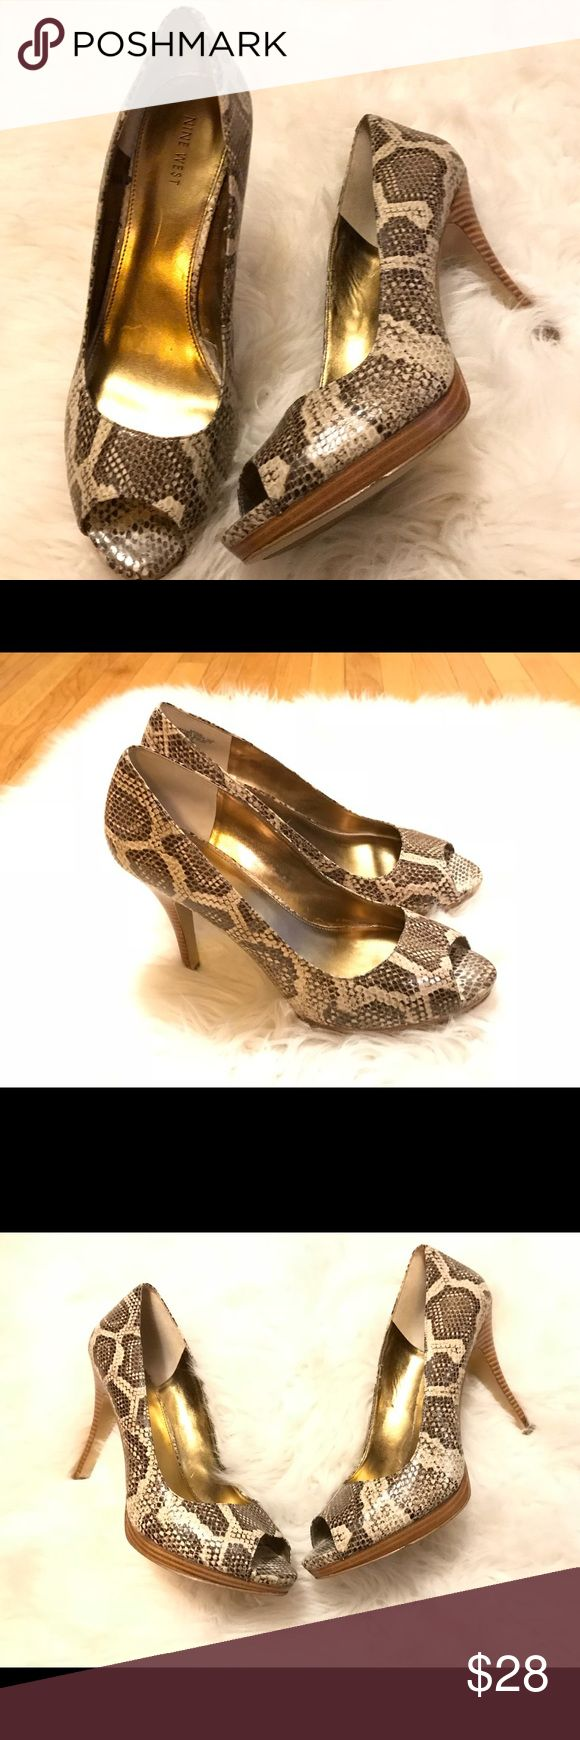 """Nine West Zulu Snakeskin Heels Size 12 EUC Nine West """"Zuki"""" Women's Animal Print Peep Toe Pumps Heels . Size 12. Preowned With Normal Wear ( NO FLAWS). Please let me know if you have any additional questions and I will get back to you ASAP. Follow my store new items are added daily. Nine West Shoes Heels"""